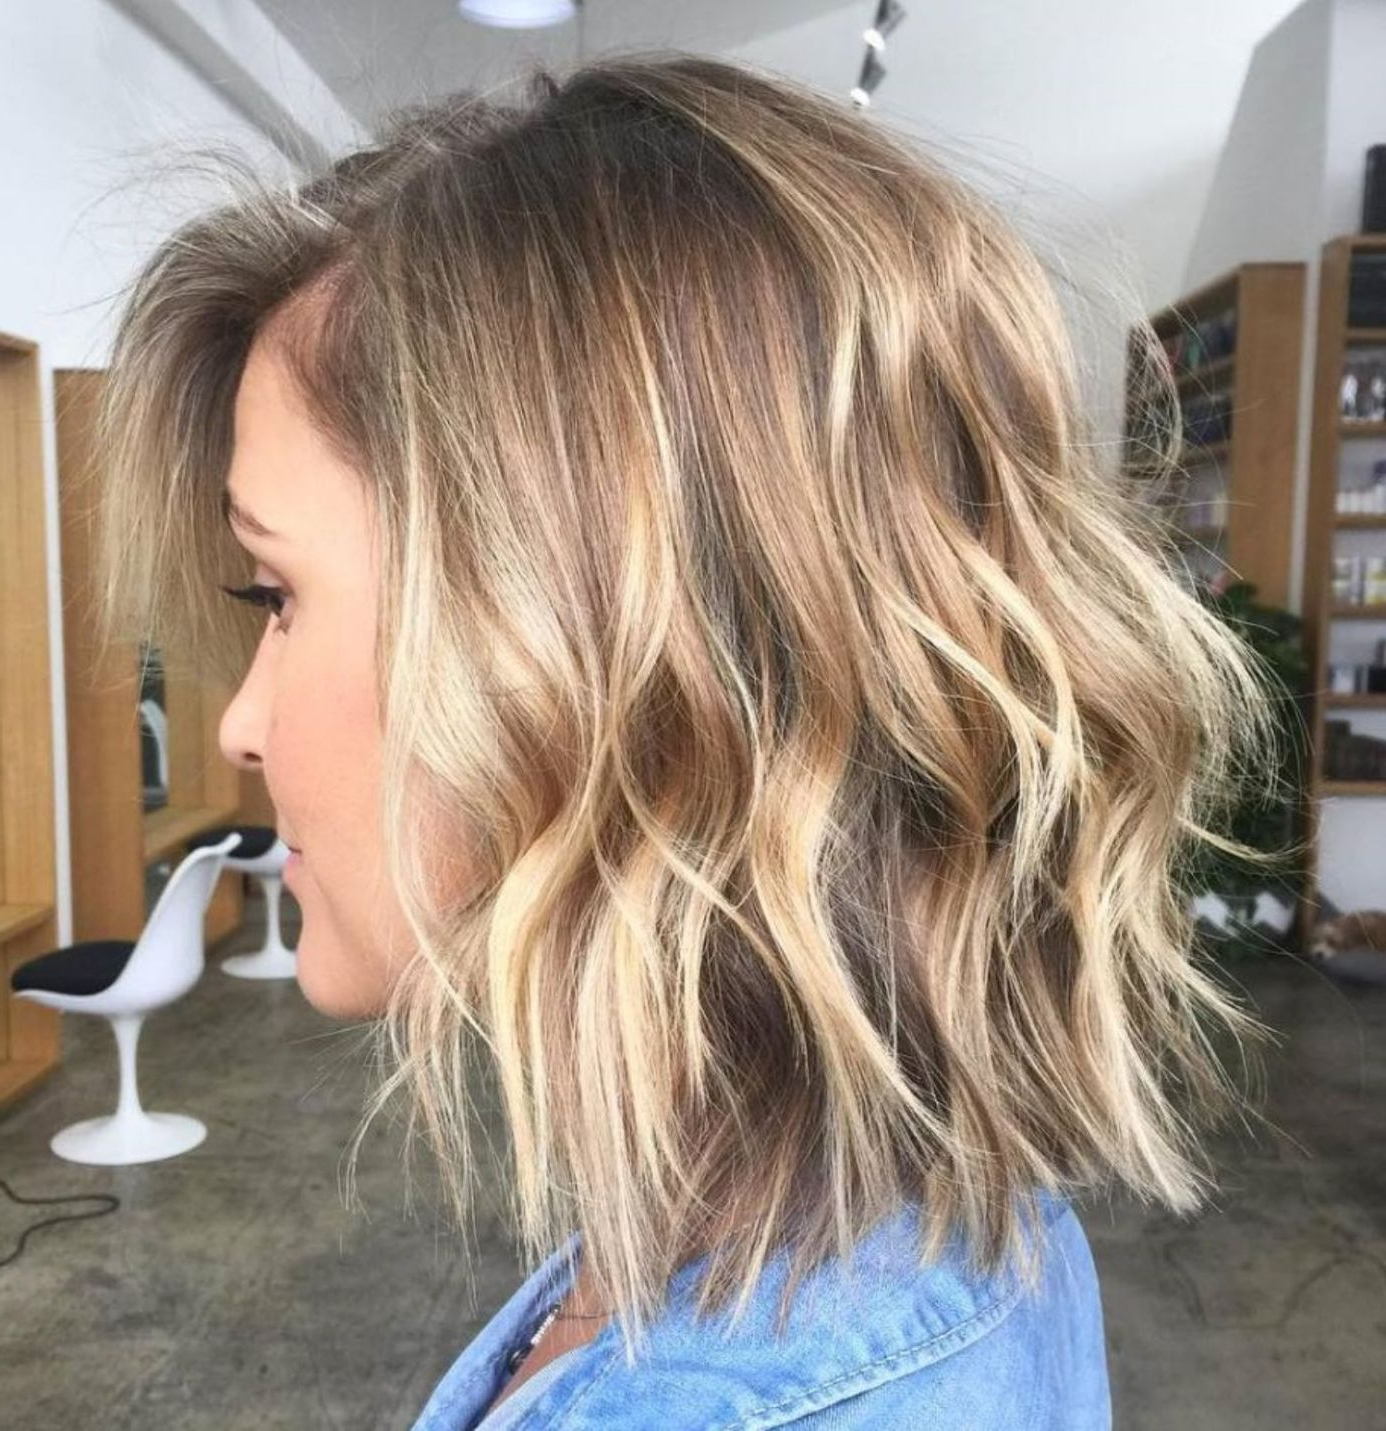 70 Perfect Medium Length Hairstyles For Thin Hair In 2019 With Short Warm Blonde Shag Haircuts (View 5 of 20)